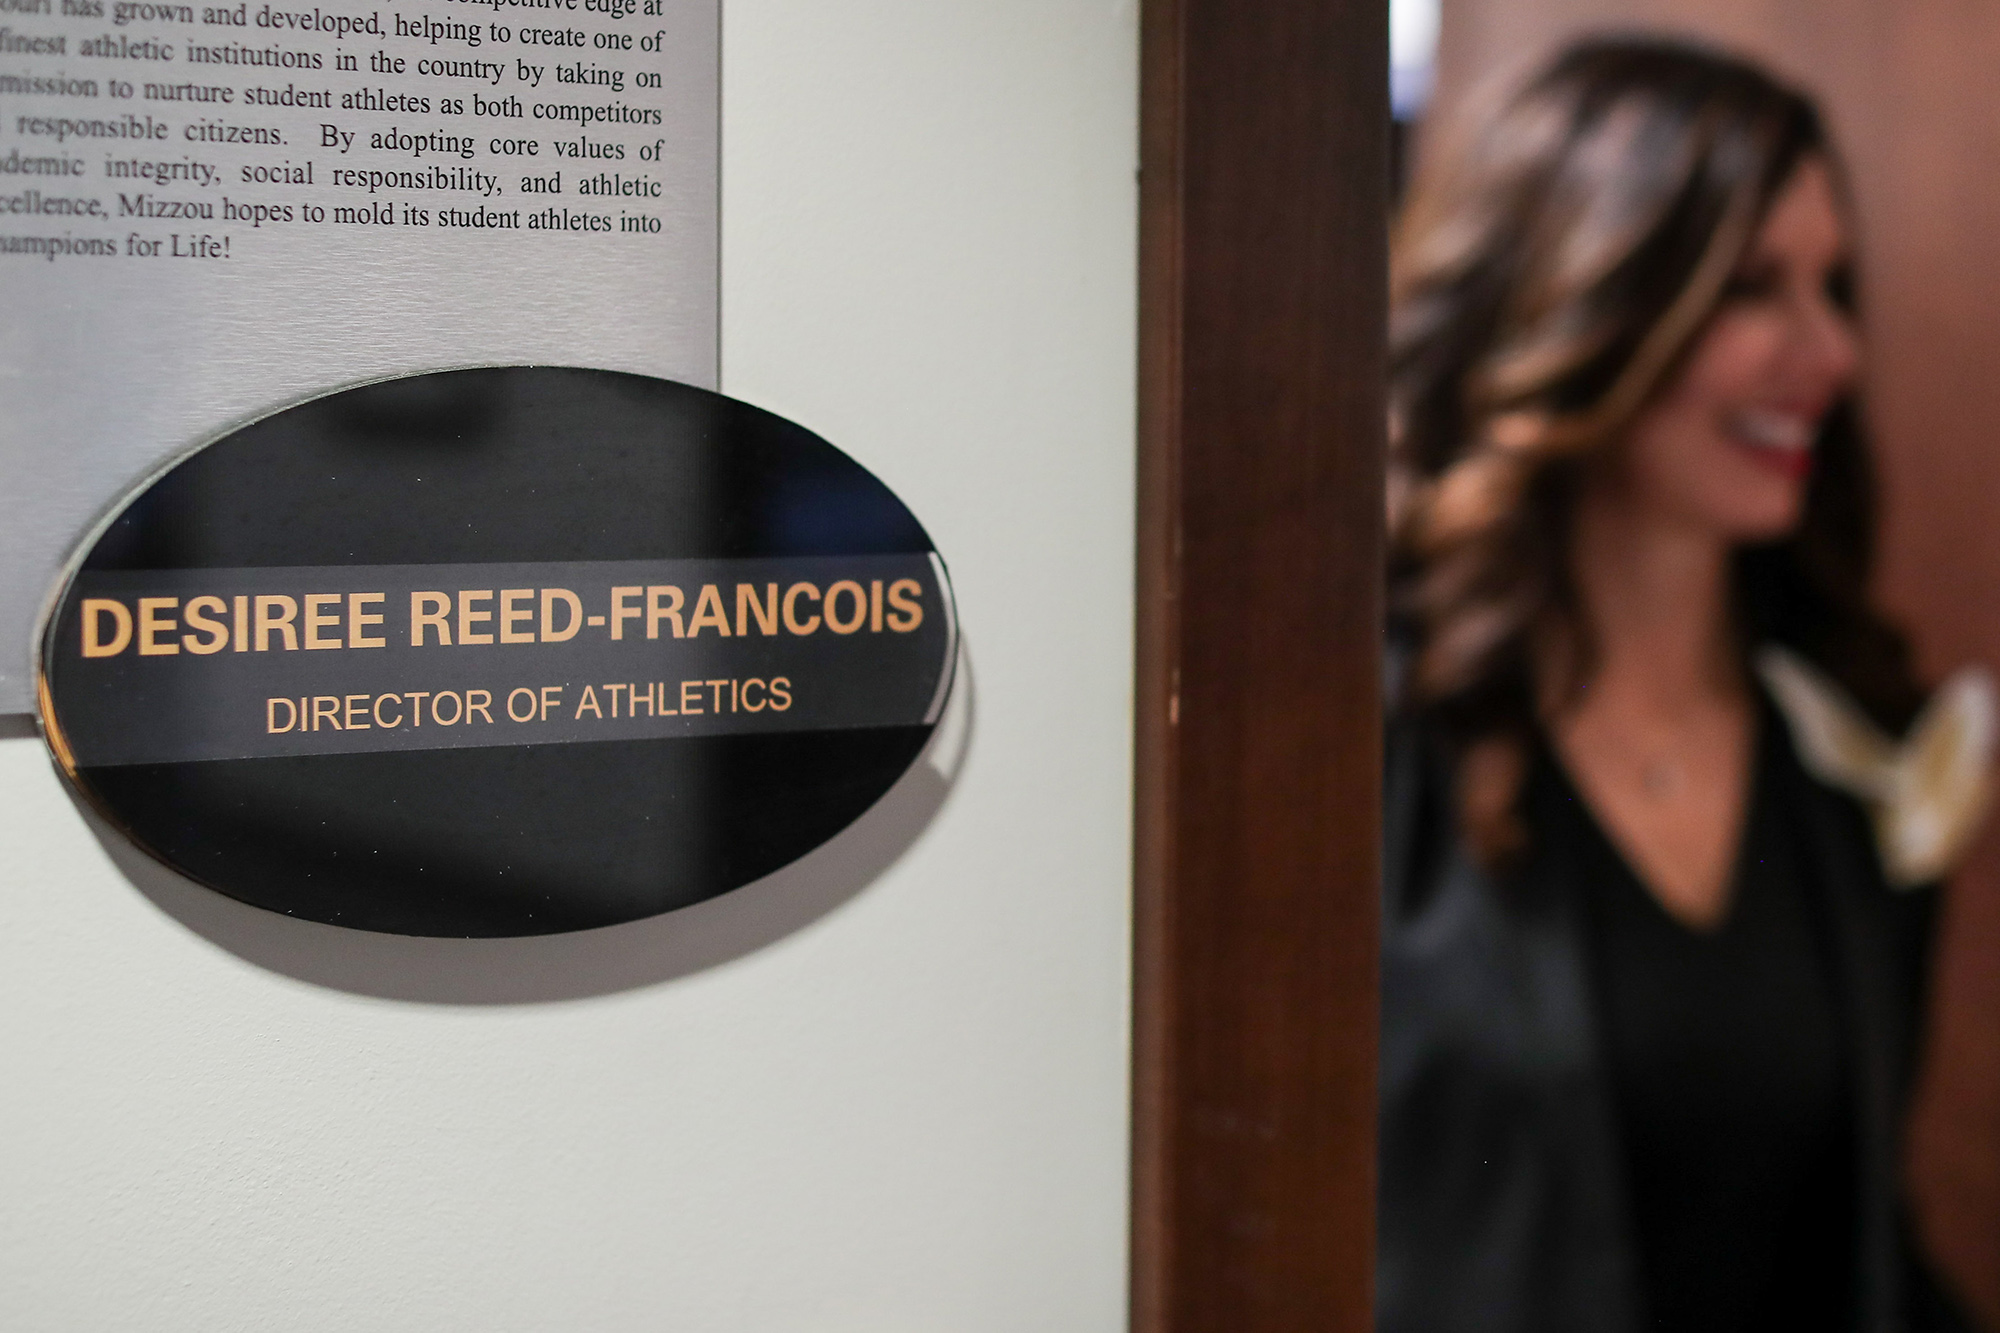 desiree reed-francois in her office